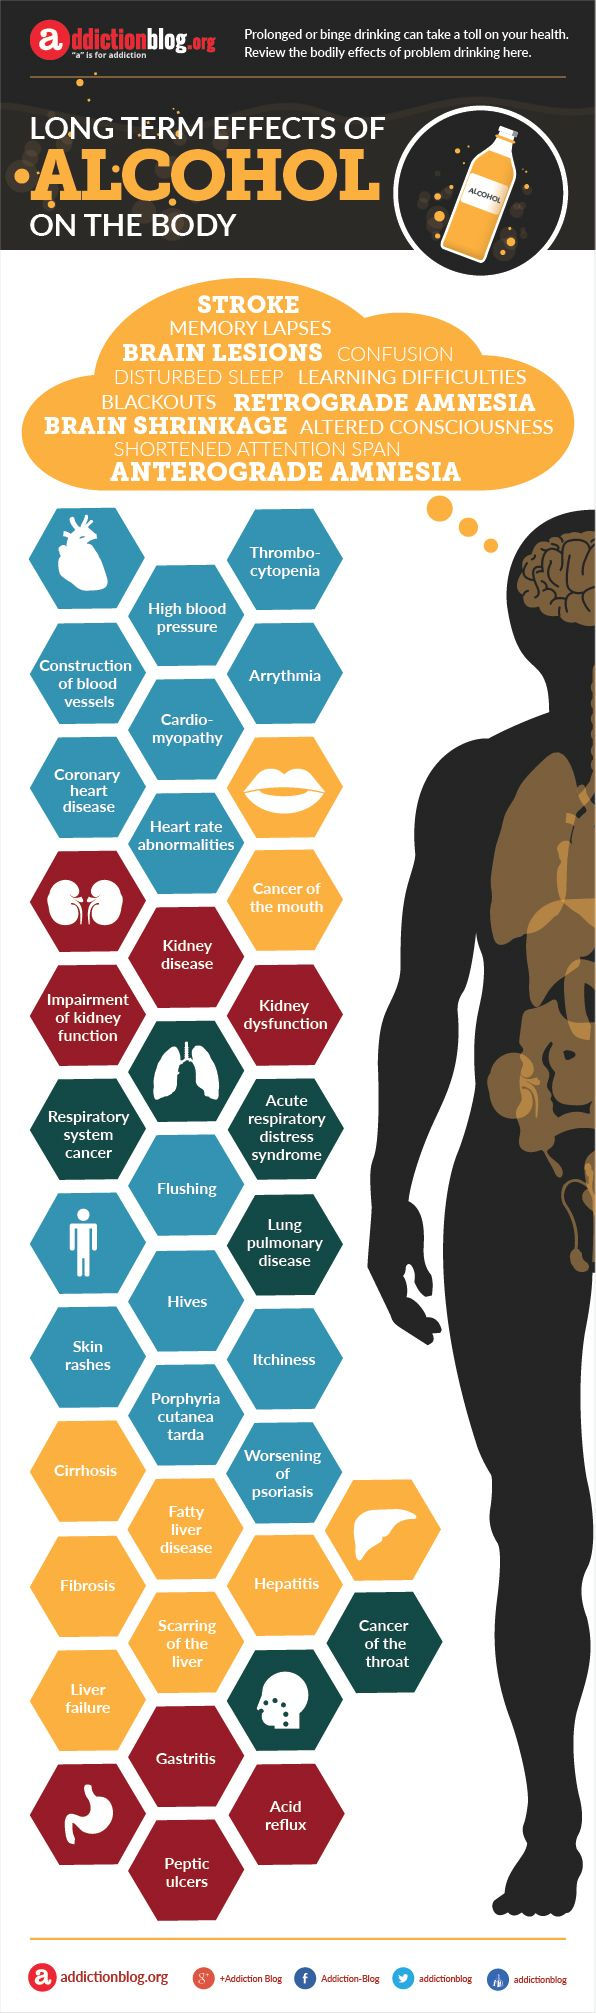 psychology-long-term-effects-of-alcohol-on-the-body-infographic